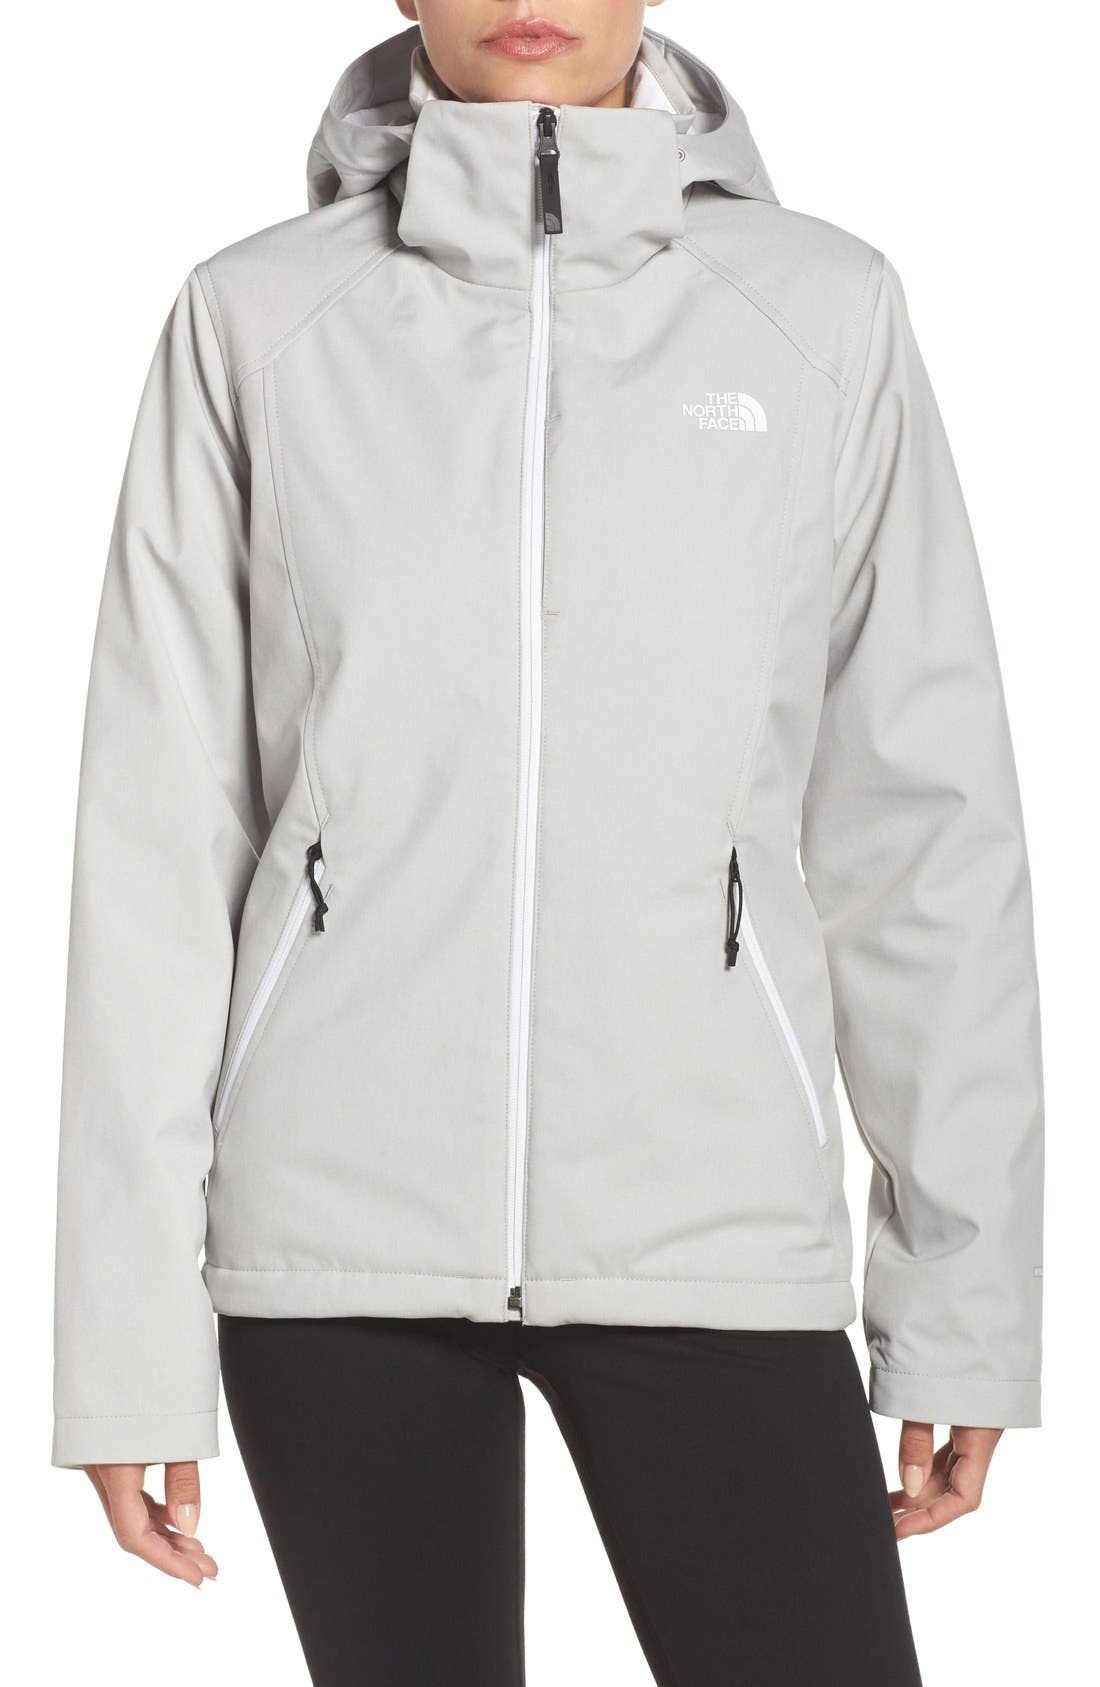 Alternate Image 1 Selected - The North Face 'Apex Elevation' Jacket